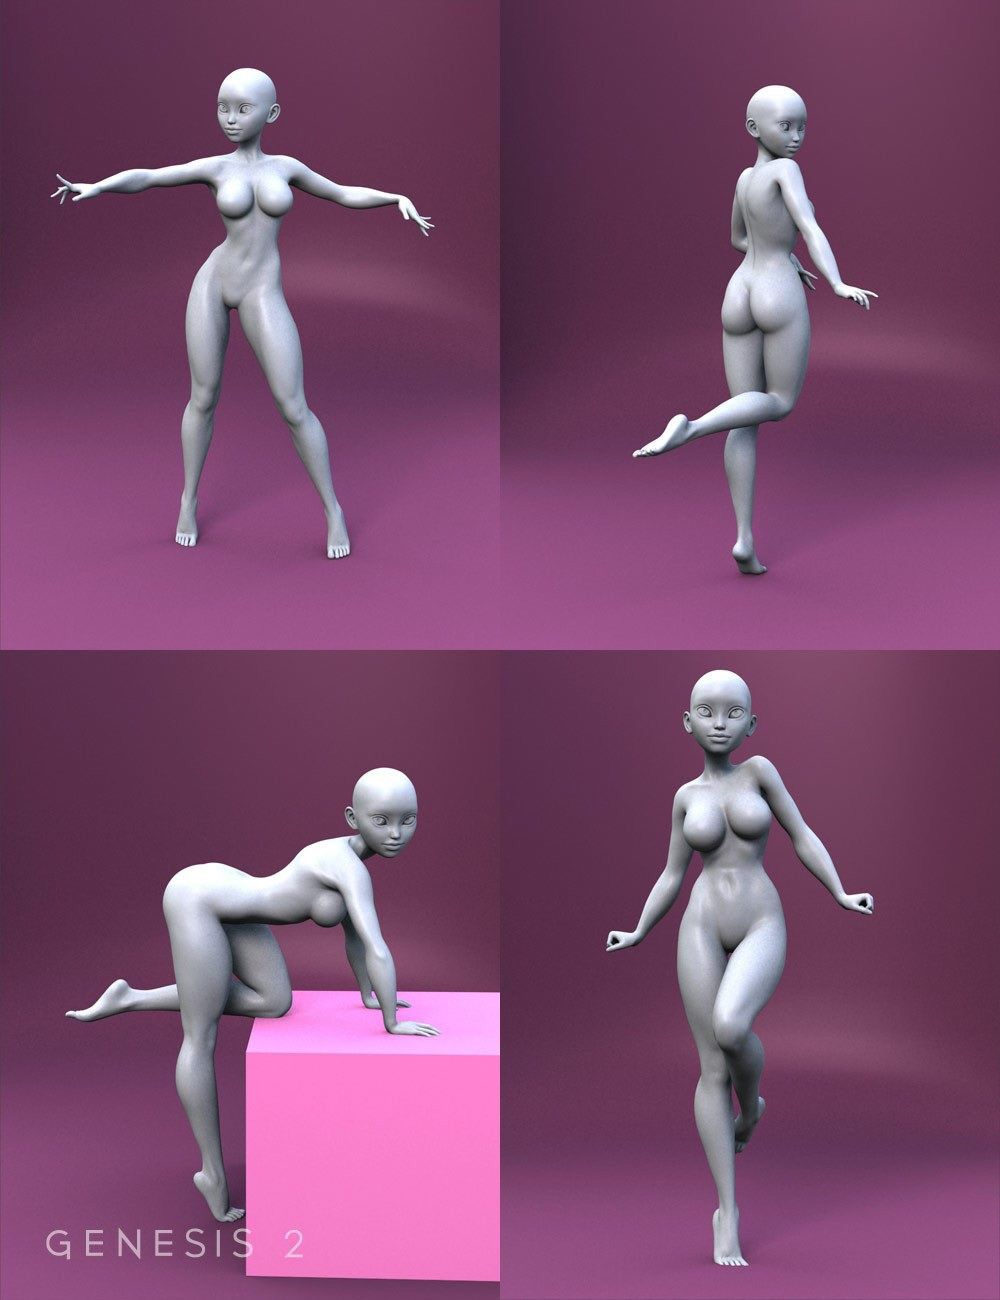 Pin By Clopezsp On Posing Mannequins Anime Poses Art Reference Poses Art Poses